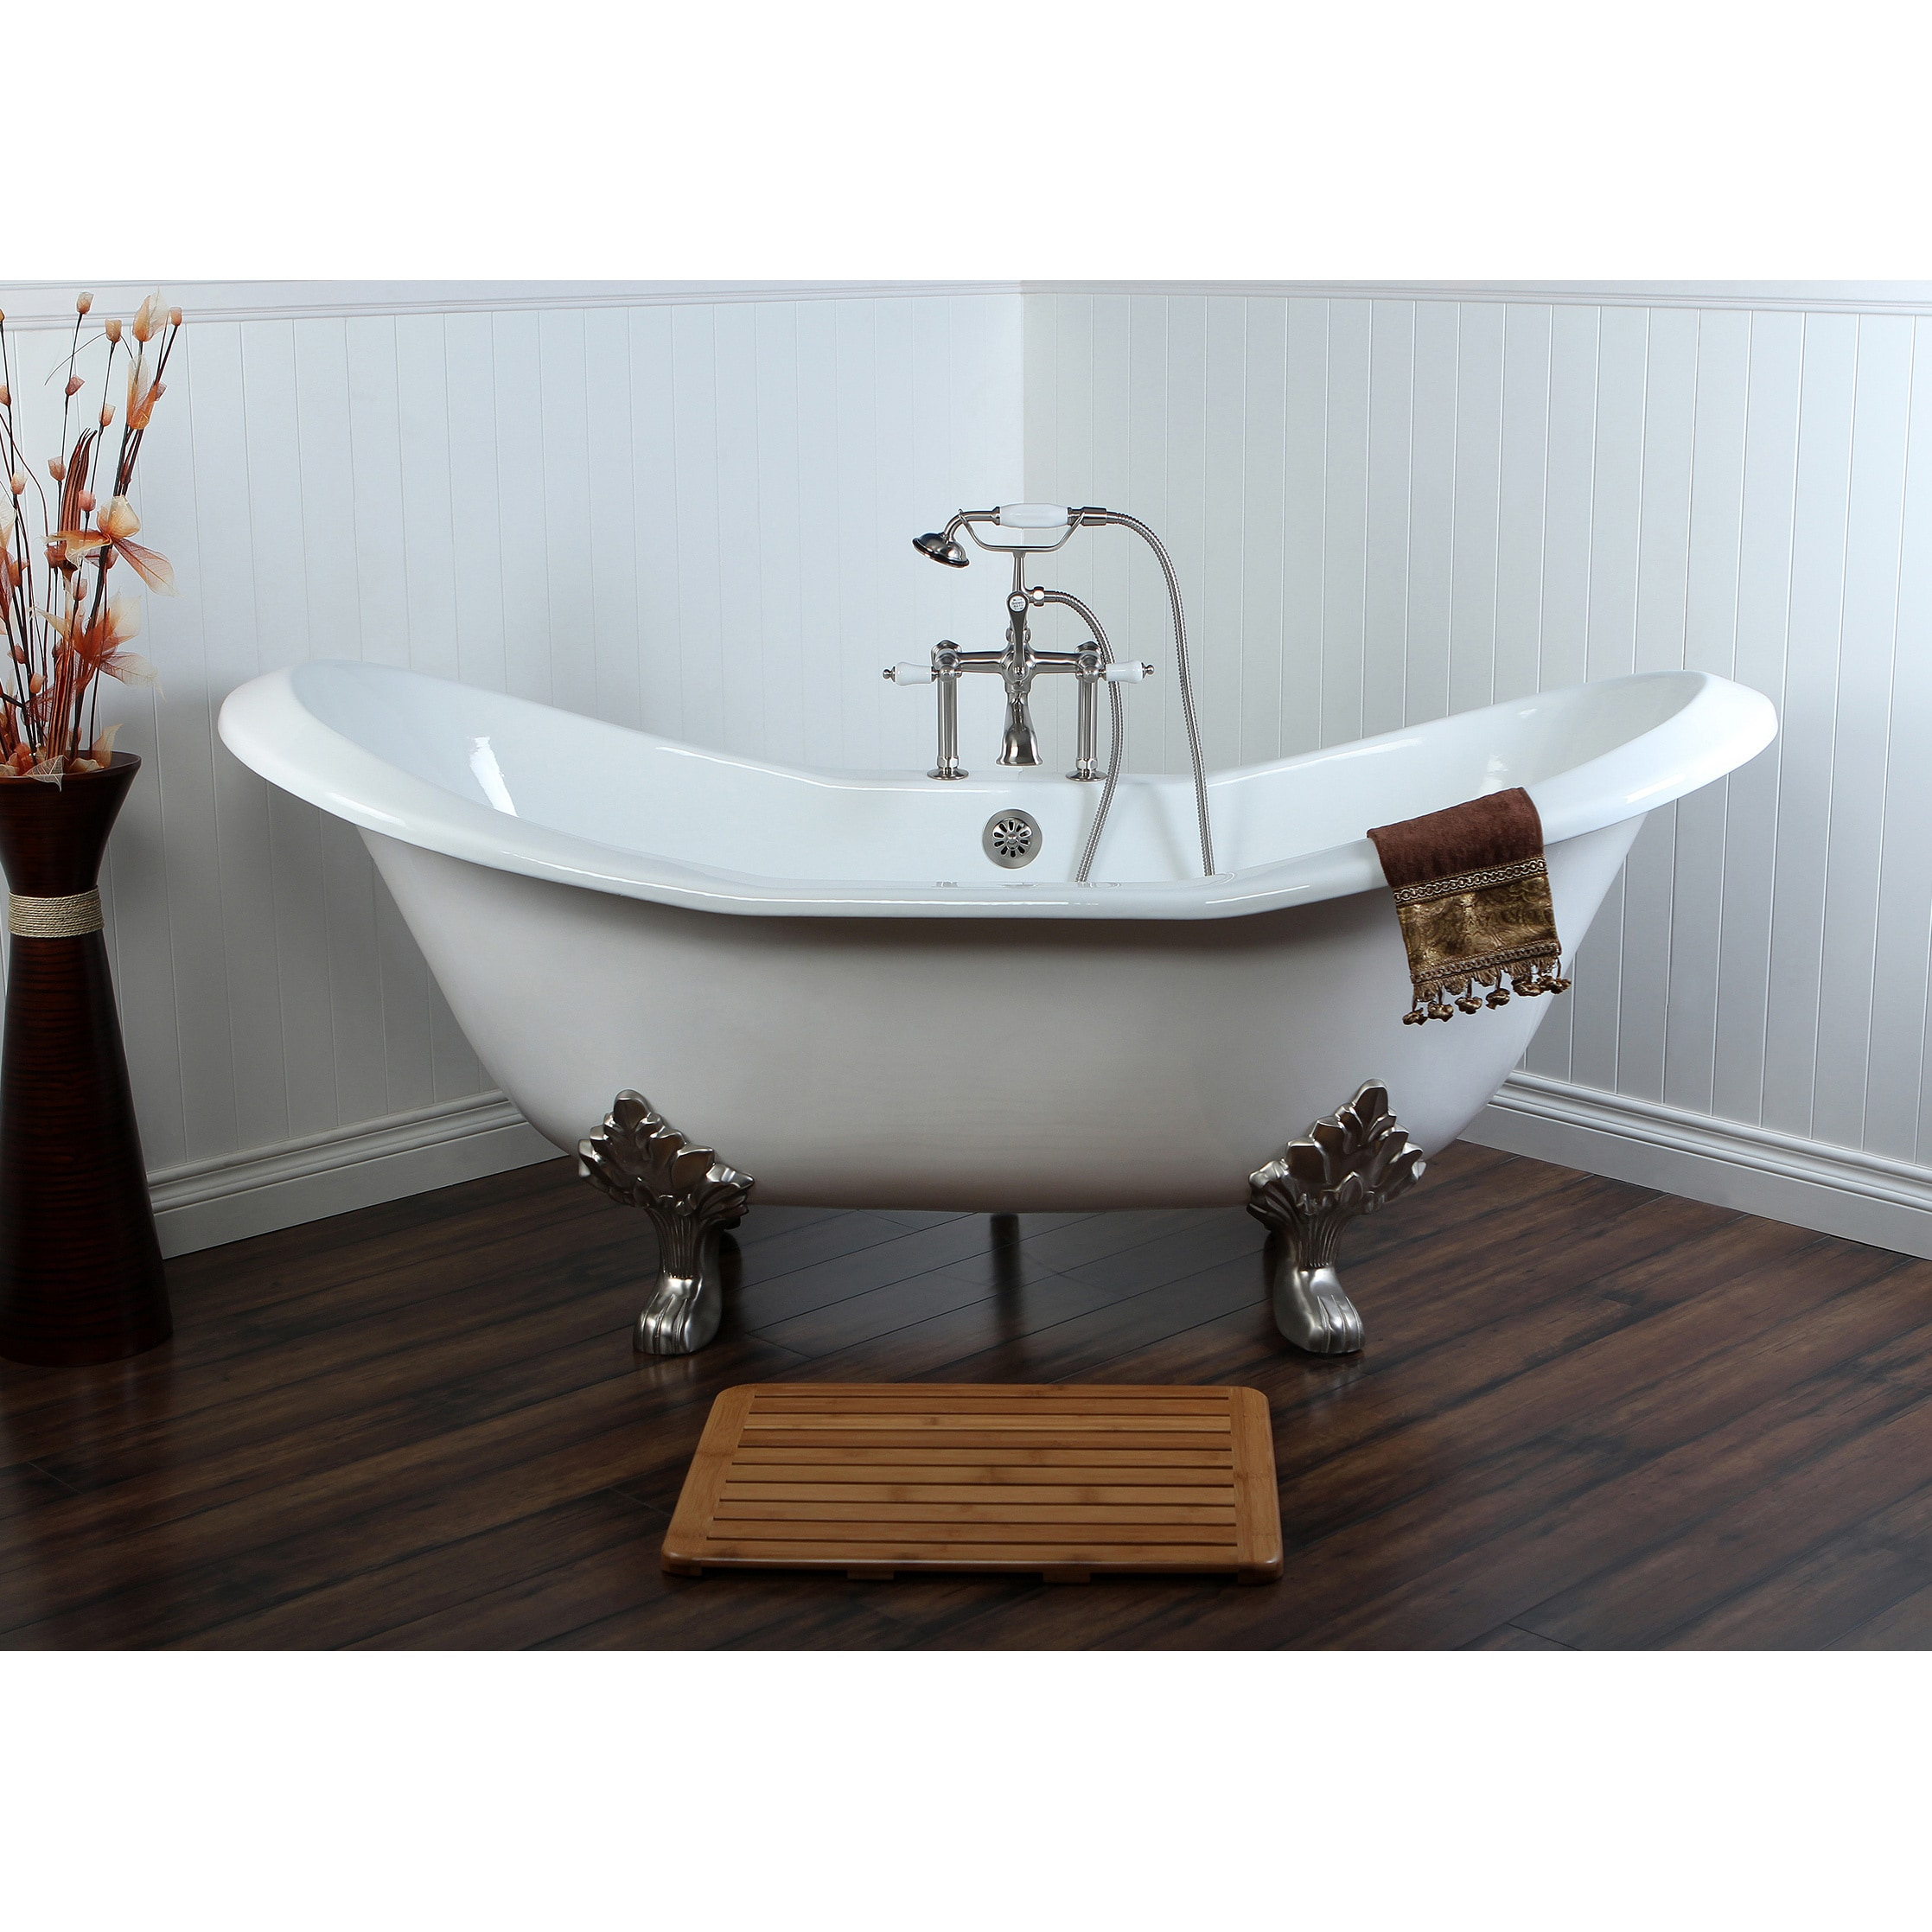 Shop Double Slipper 72-inch Cast Iron Clawfoot Bathtub - Free ...